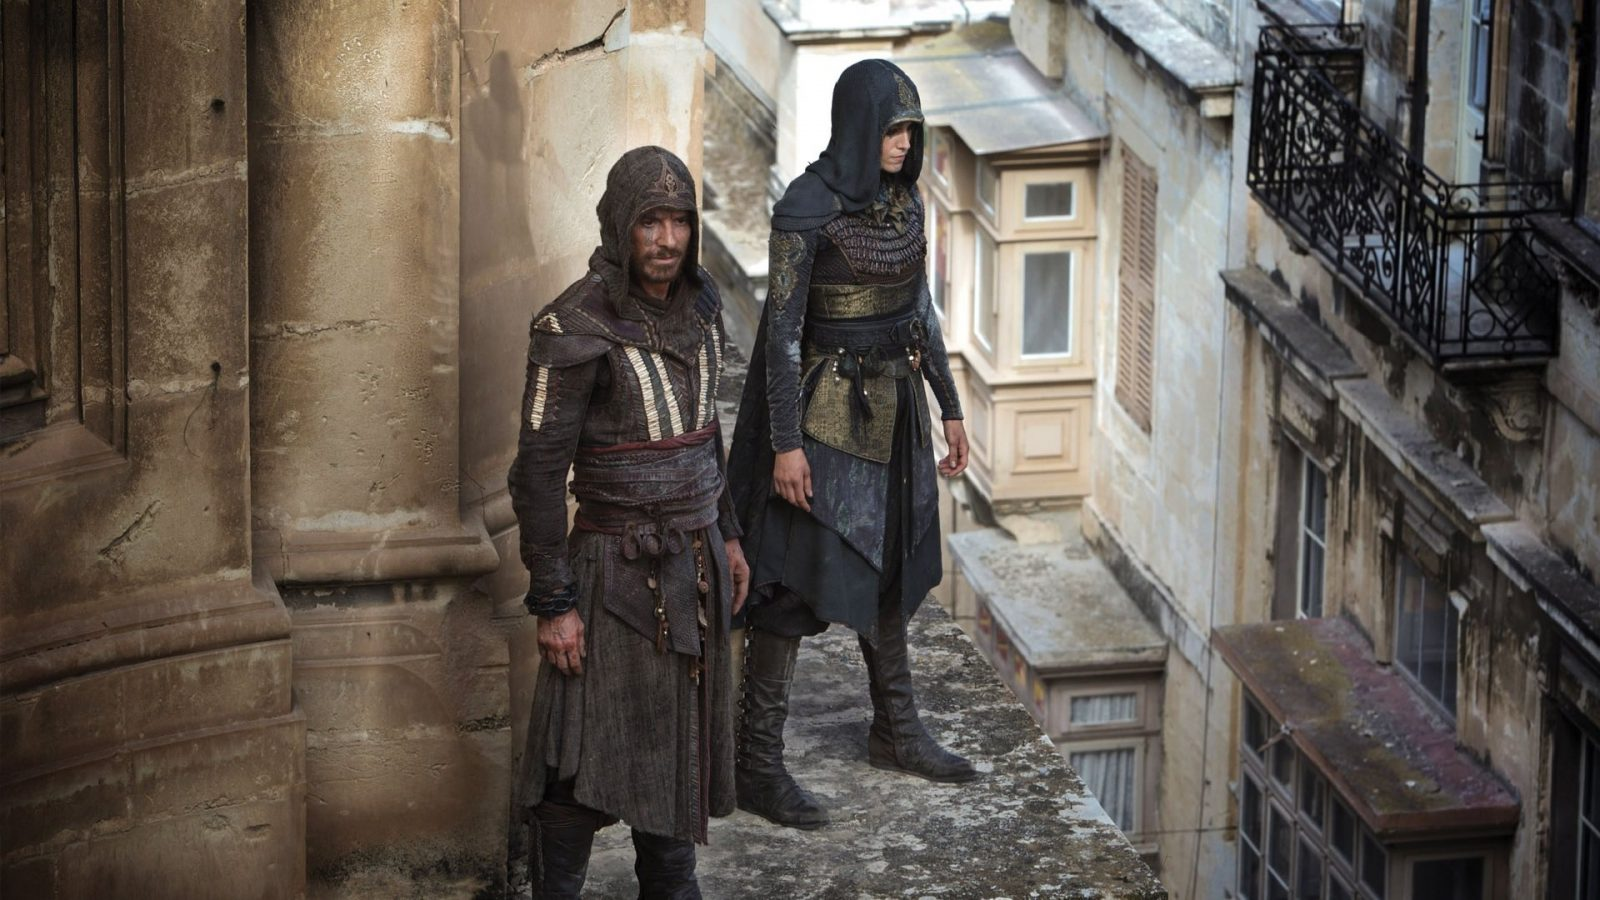 Disney Cancels Assassin's Creed Film Sequel, Mega Man and The Sims Movies